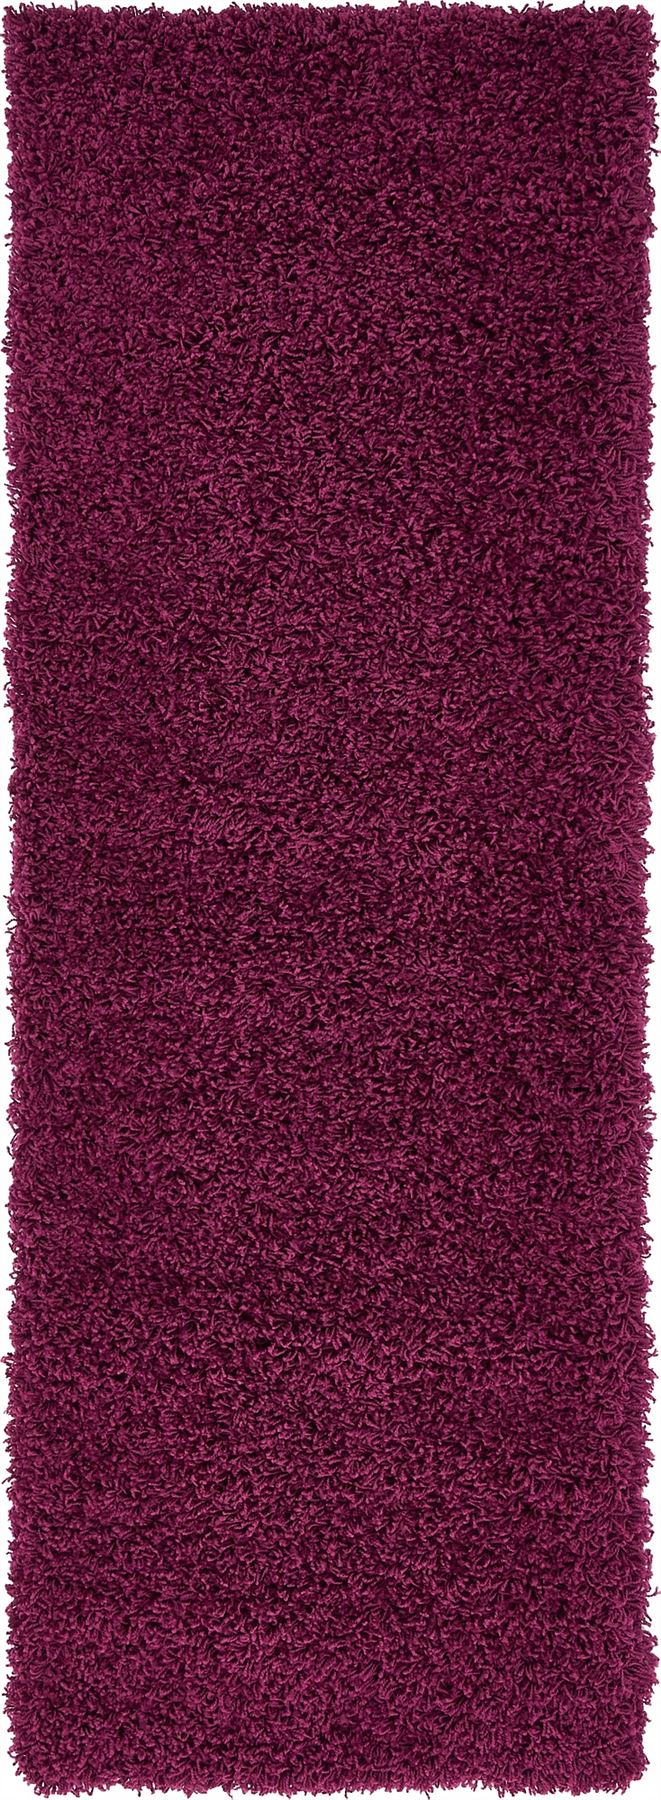 Soft thick shaggy modern fluffy warm colour rug carpet for Warm rugs